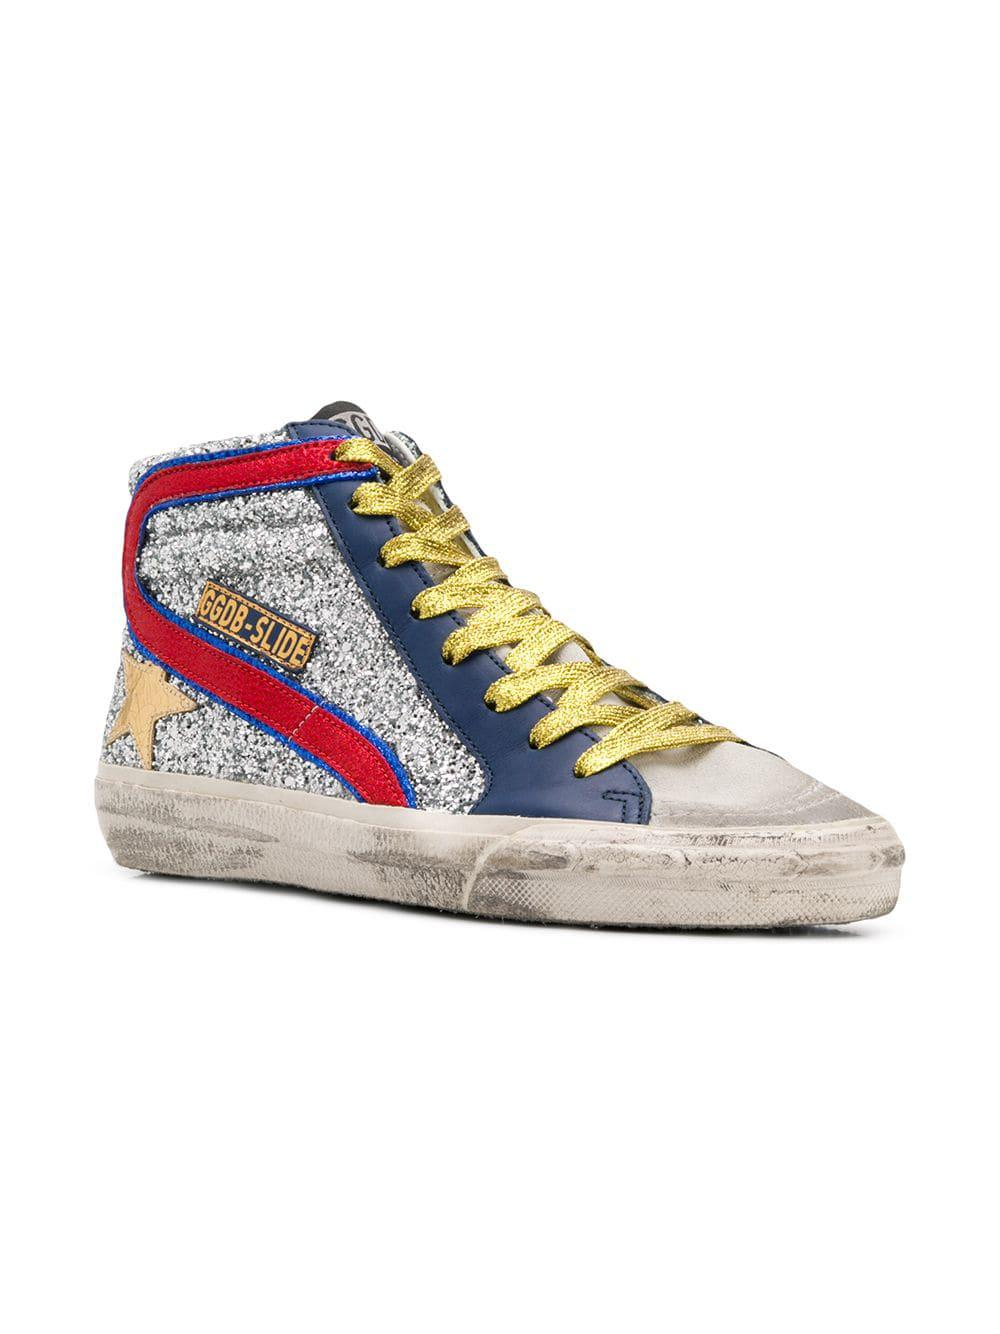 84325bf345cd Golden Goose Deluxe Brand - Metallic Mid Star Sneakers - Lyst. View  fullscreen